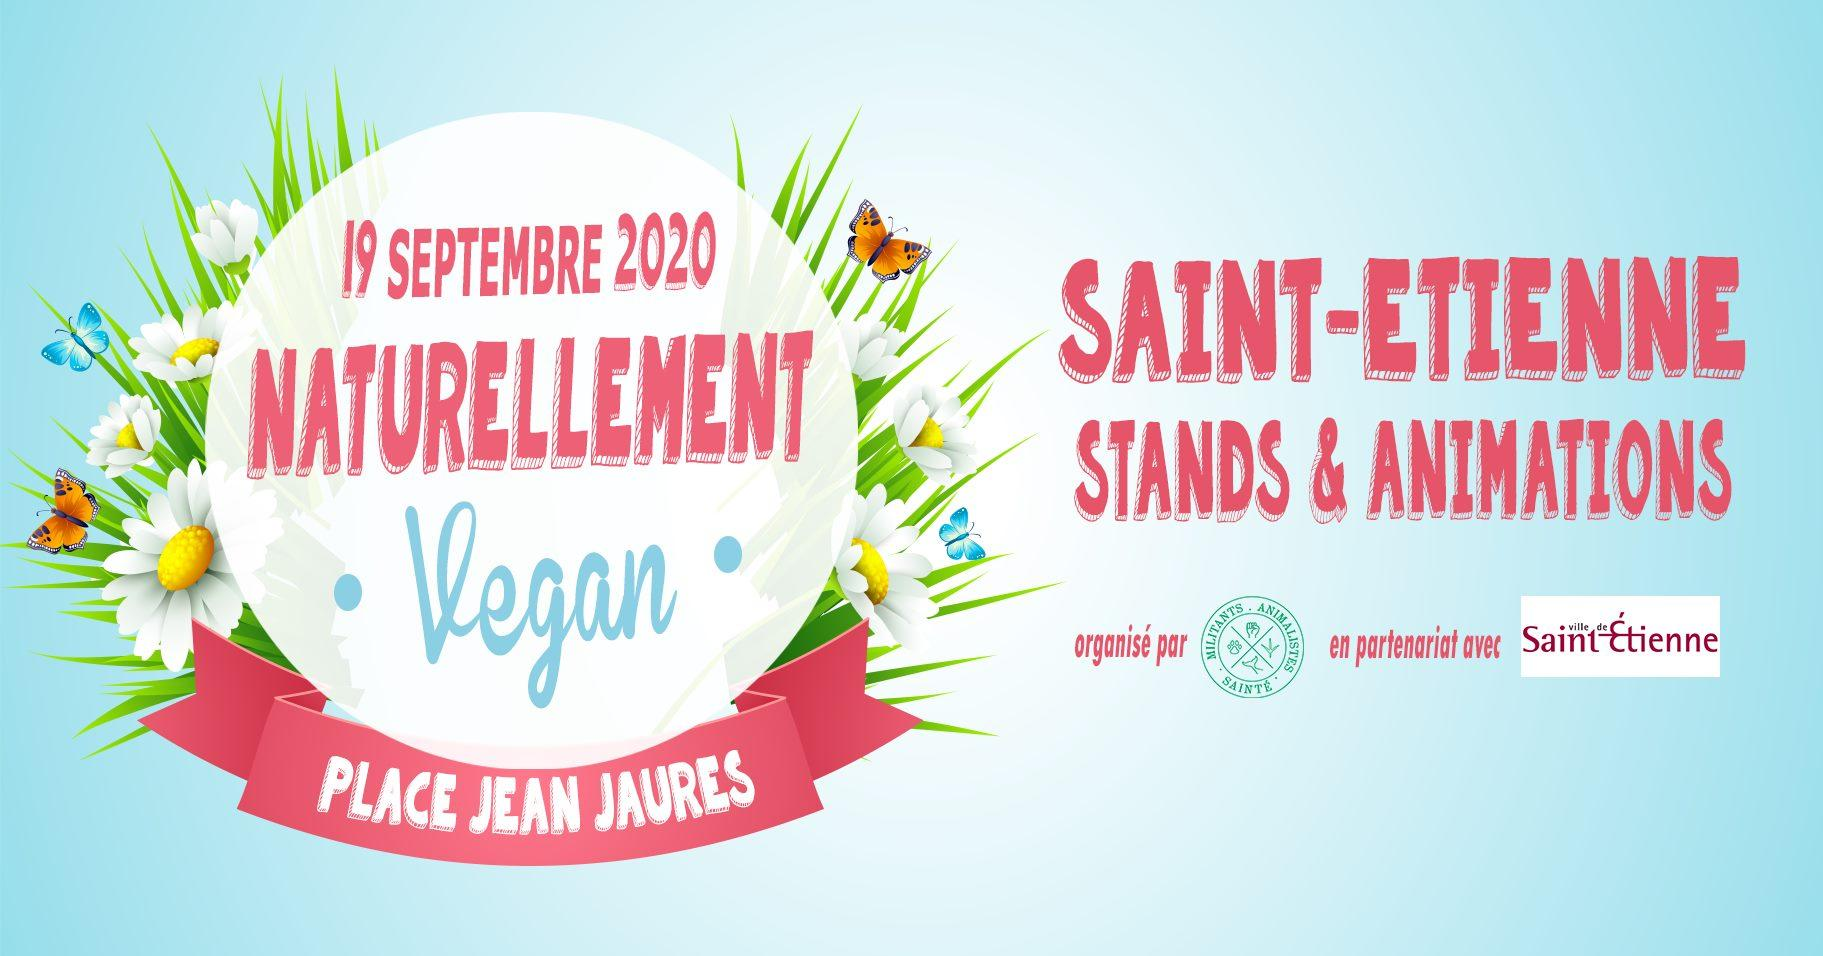 Naturellement vegan 2020